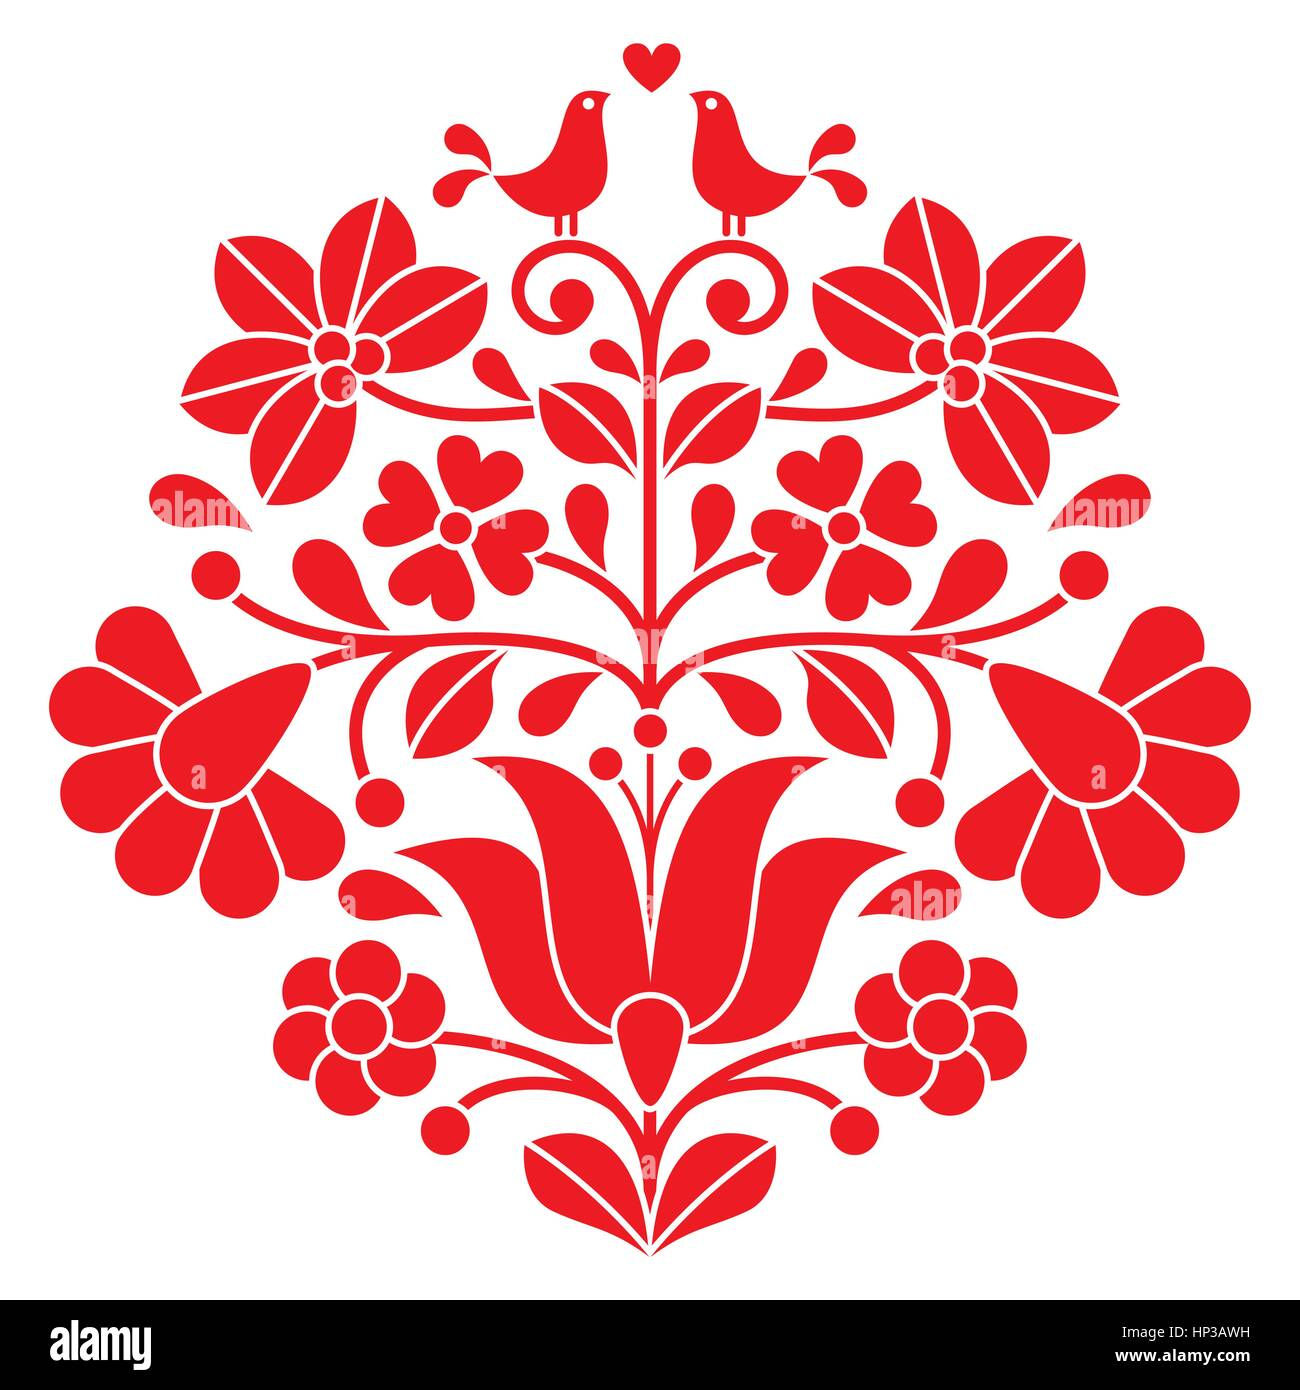 Red Flower Line Drawing : Kalocsai red embroidery hungarian floral folk pattern